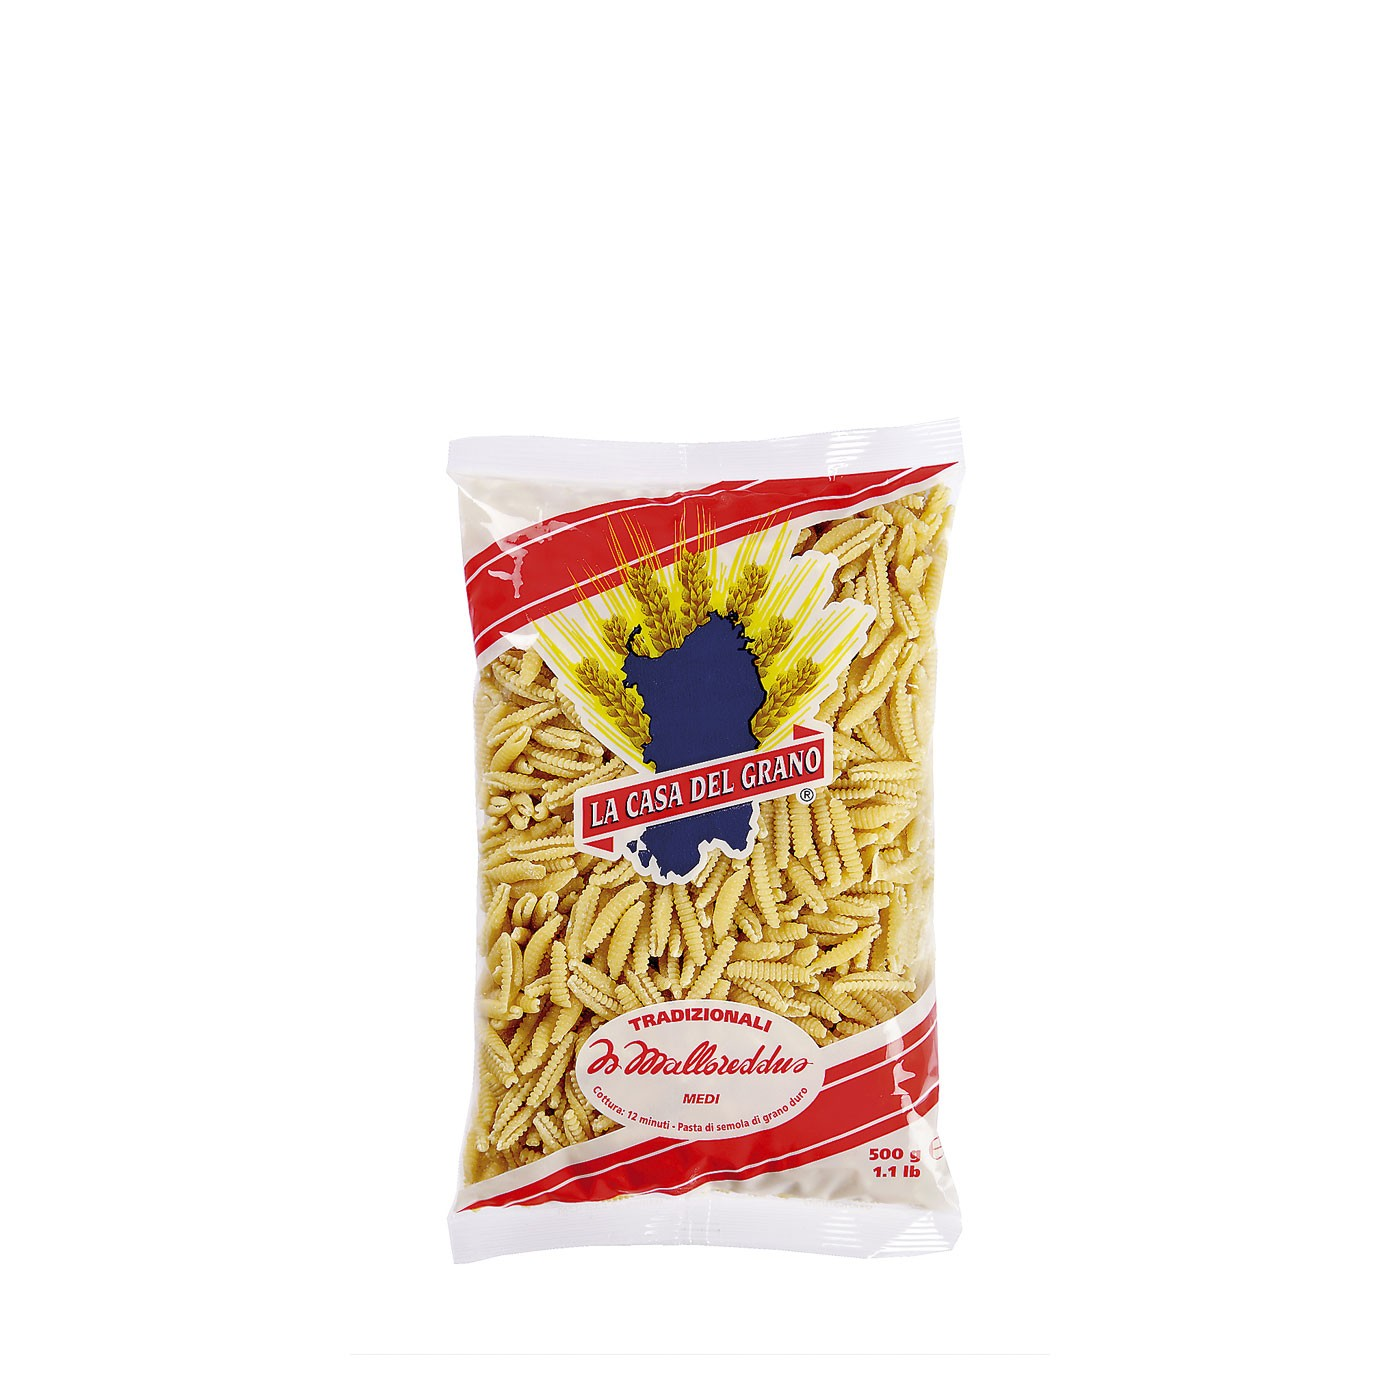 Medium Malloreddus Pasta